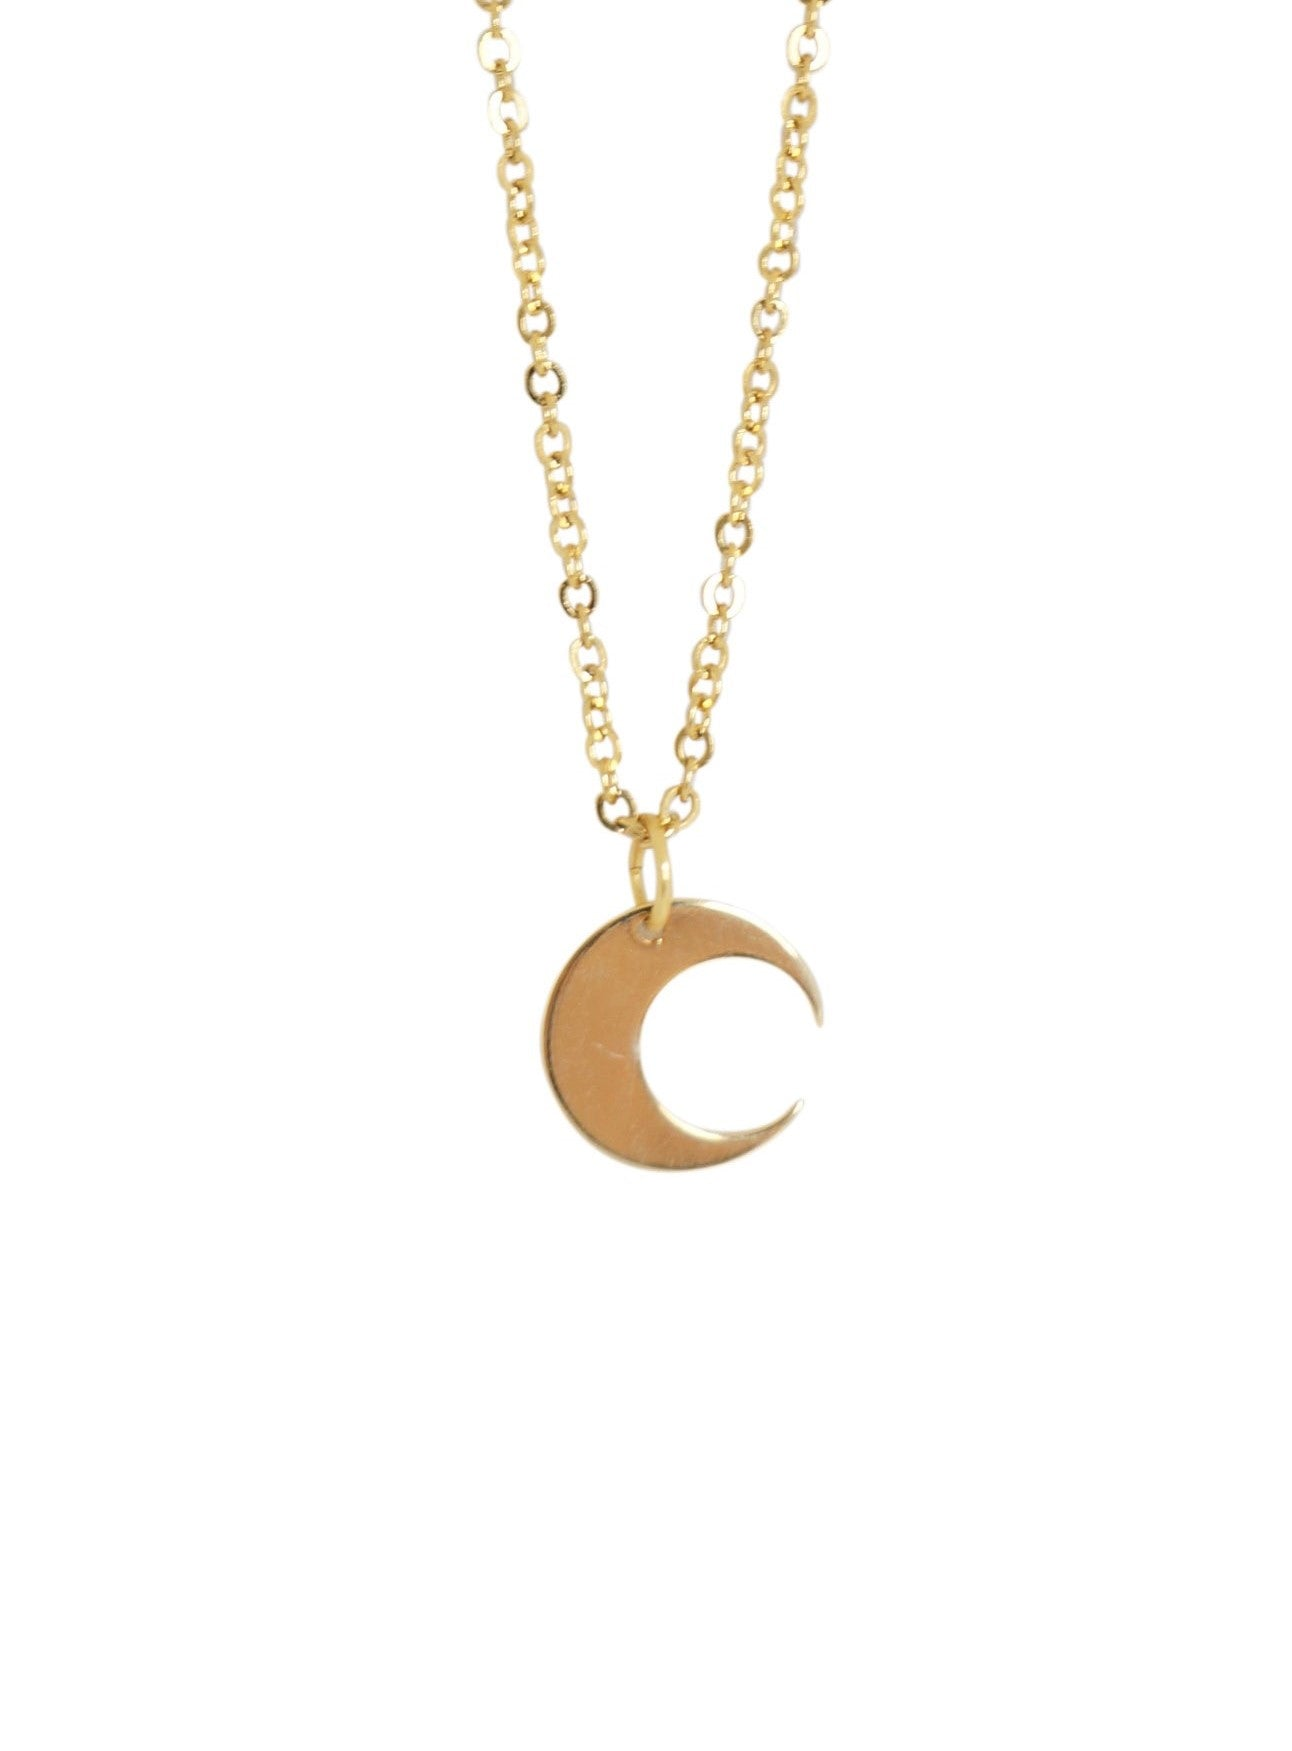 Crescent Necklace - Carolyn Hearn Designs